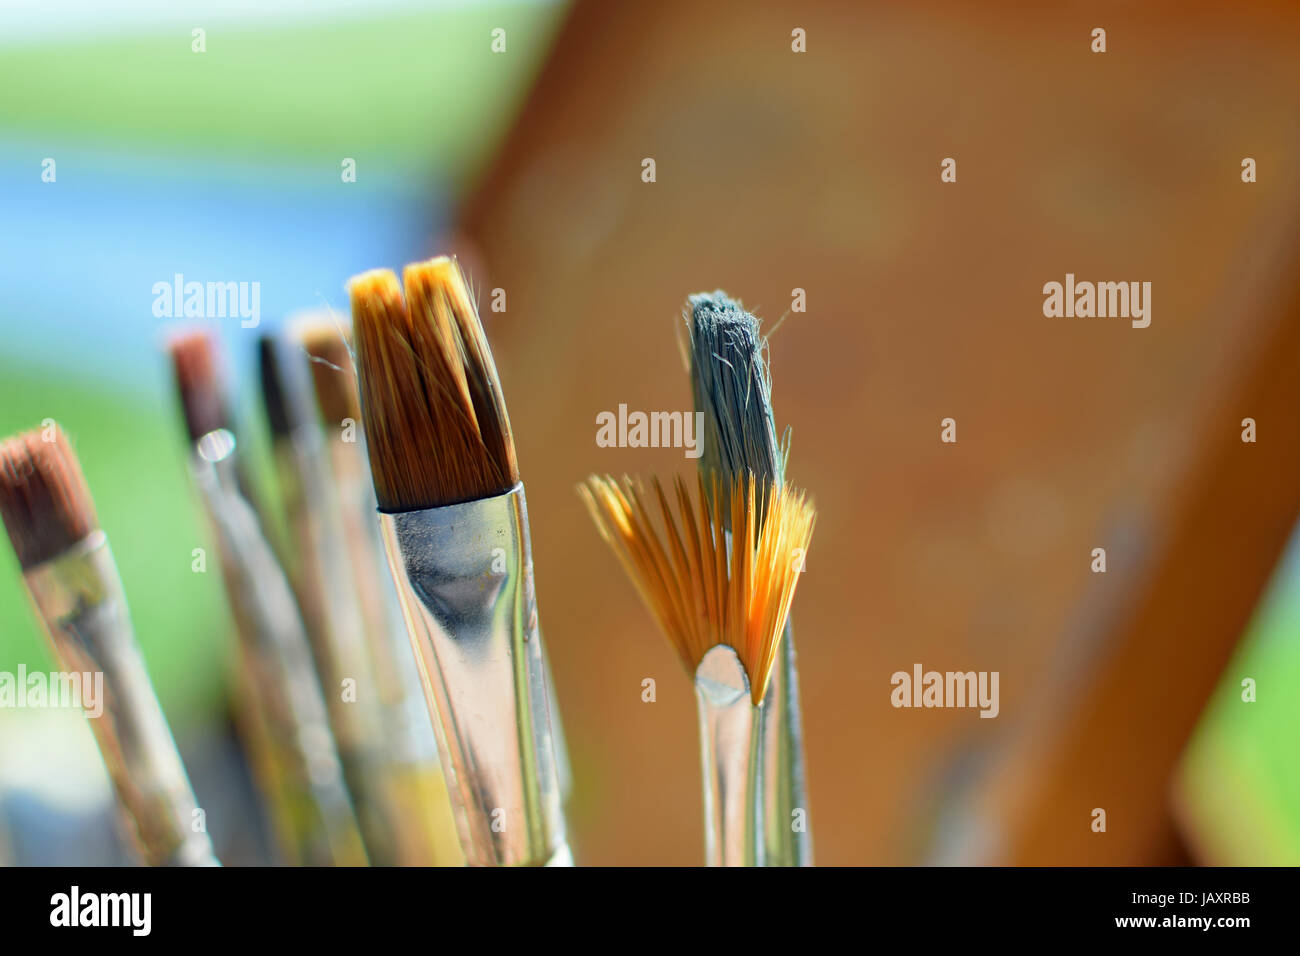 Close up of paint brushes outdoors. Selective focus horizontal image - Stock Image